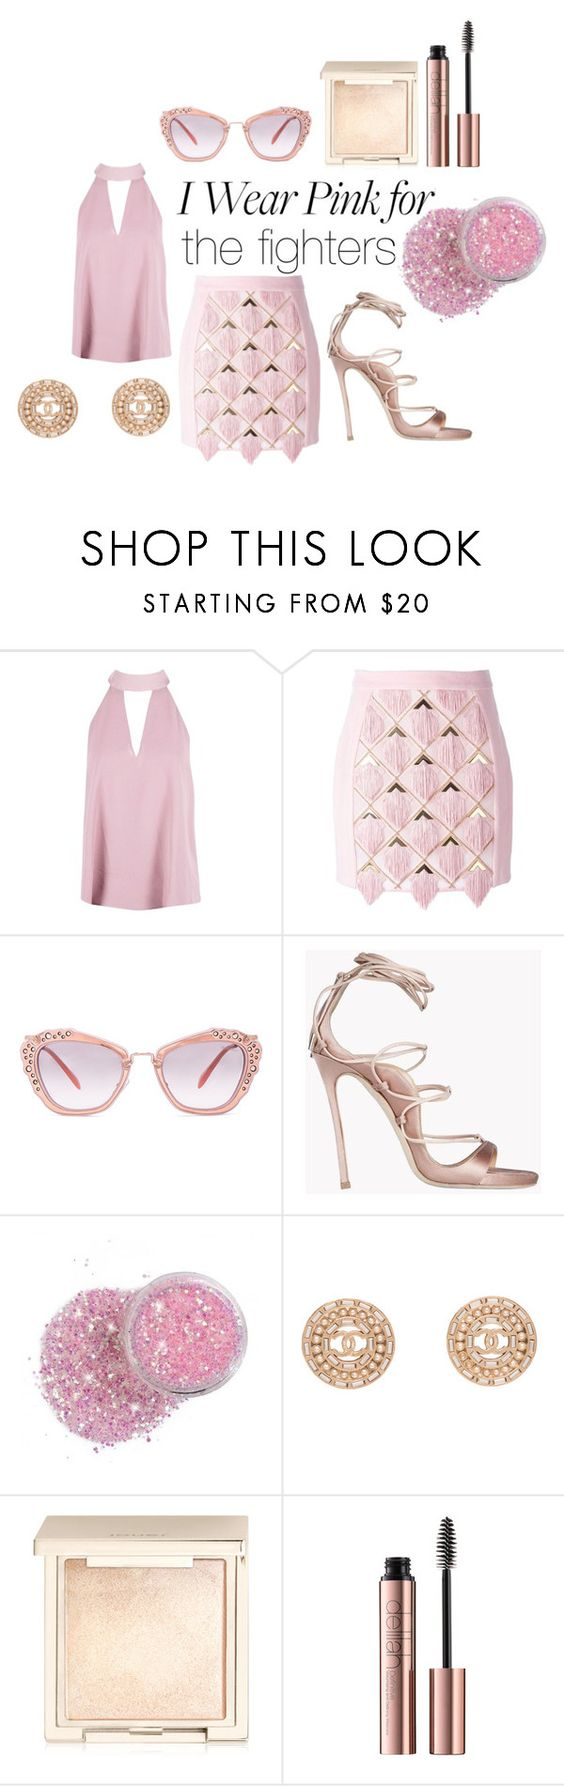 """i wear pink for"" by harrietbuick ❤ liked on Polyvore featuring Boohoo, Balmain, Miu Miu, Dsquared2, Chanel, Jouer and IWearPinkFor"